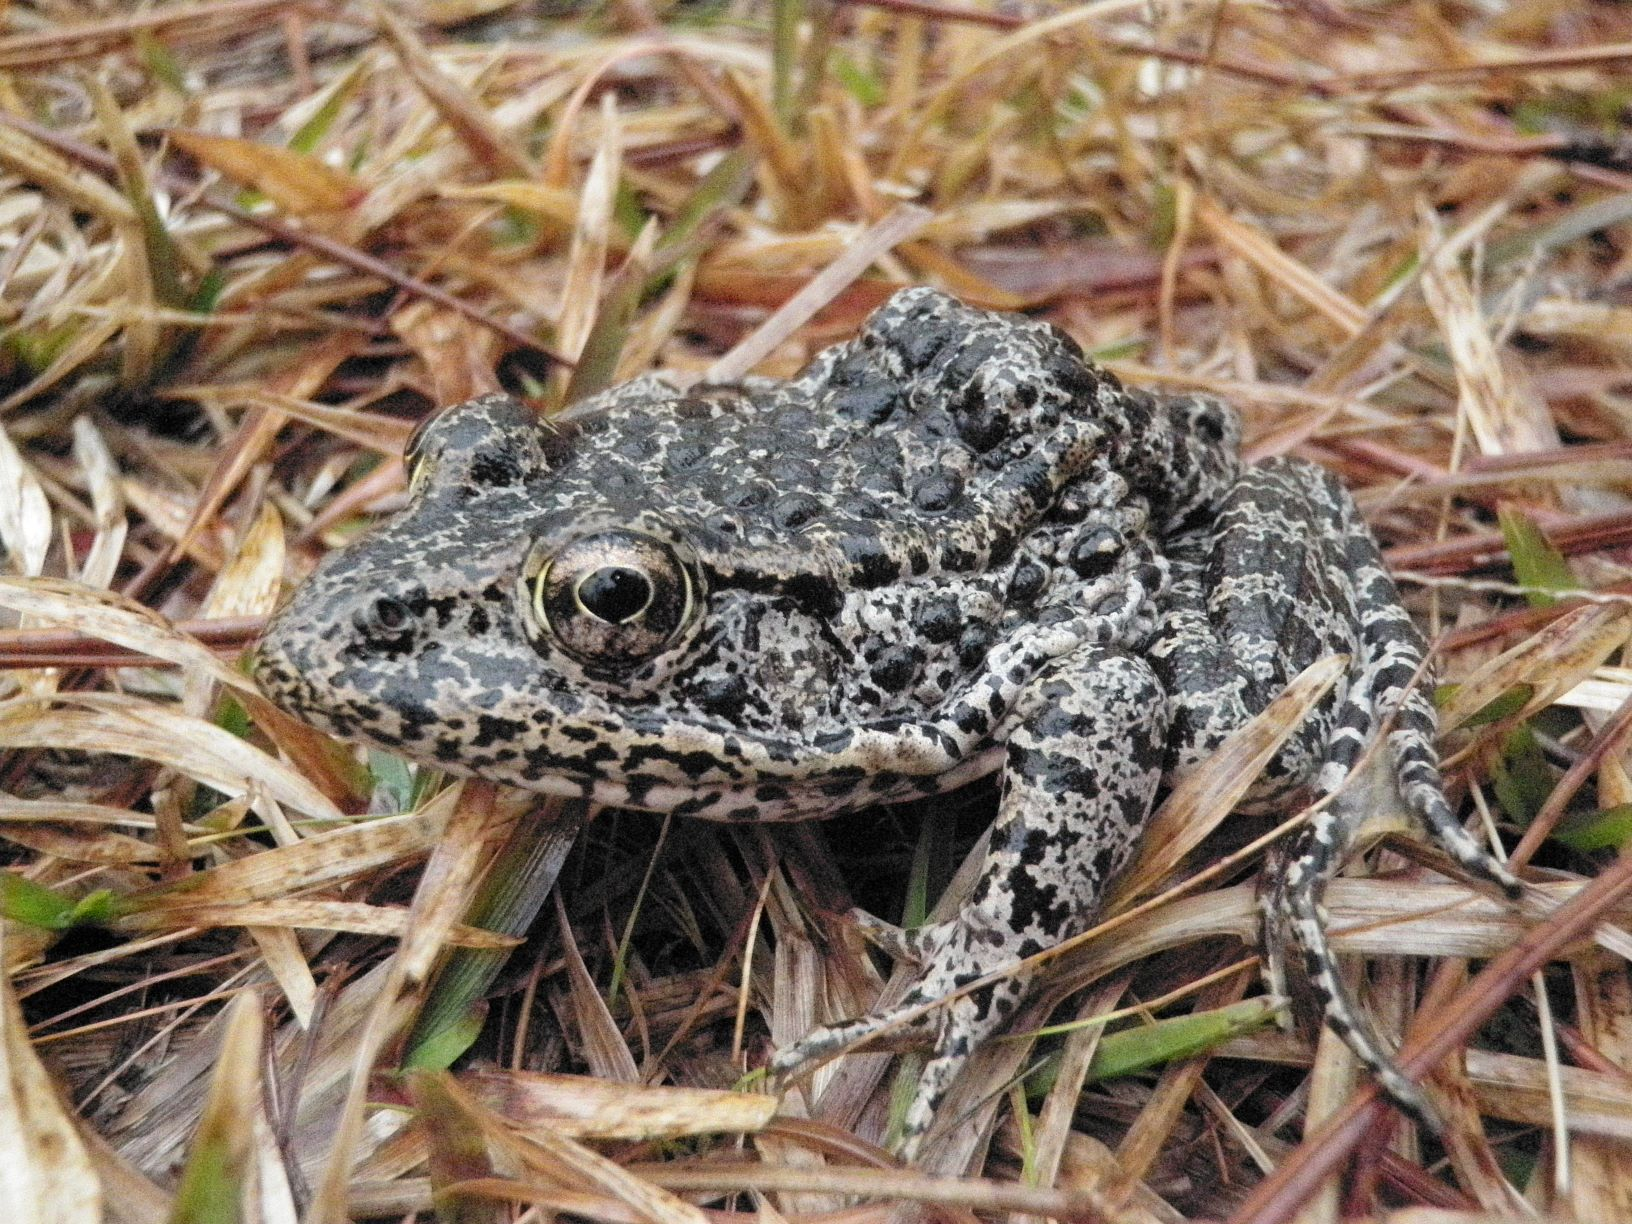 The endangered dusky gopher frog.